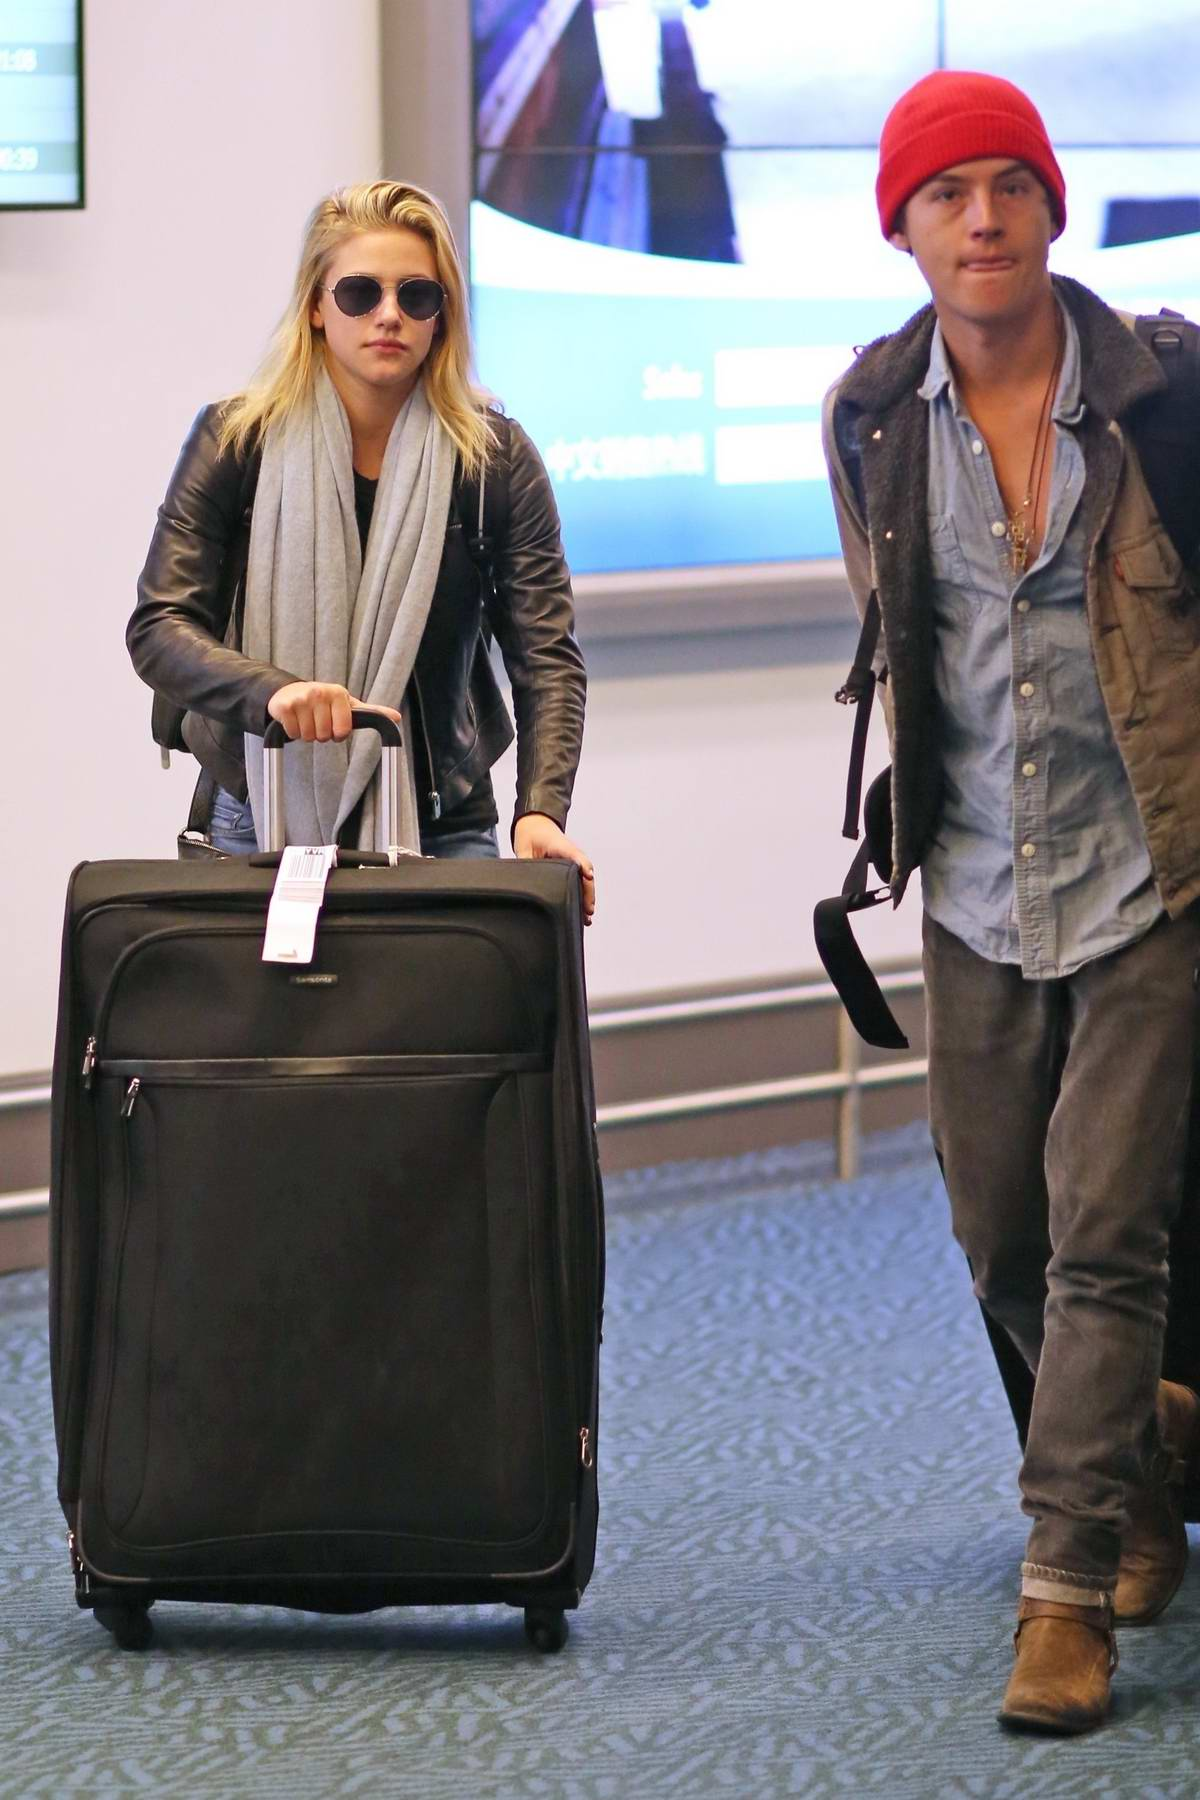 Lili Reinhart and Cole Sprouse were spotted arriving back in Vancouver, Canada